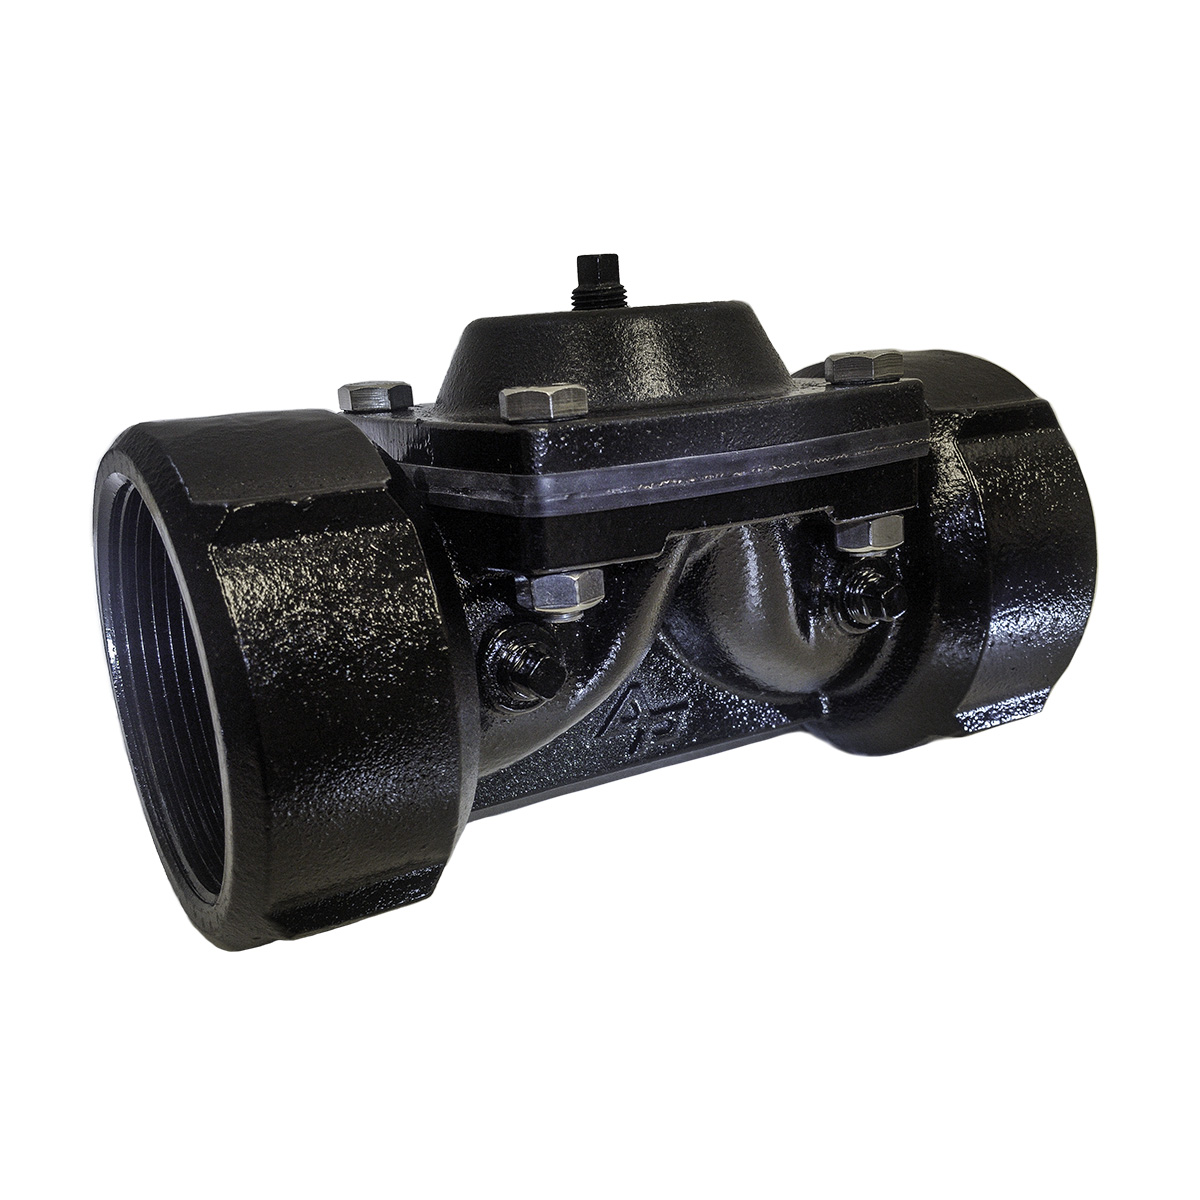 Buy 3 threaded diaphragm valve online at access truck parts 3 threaded diaphragm valve for sale ccuart Gallery